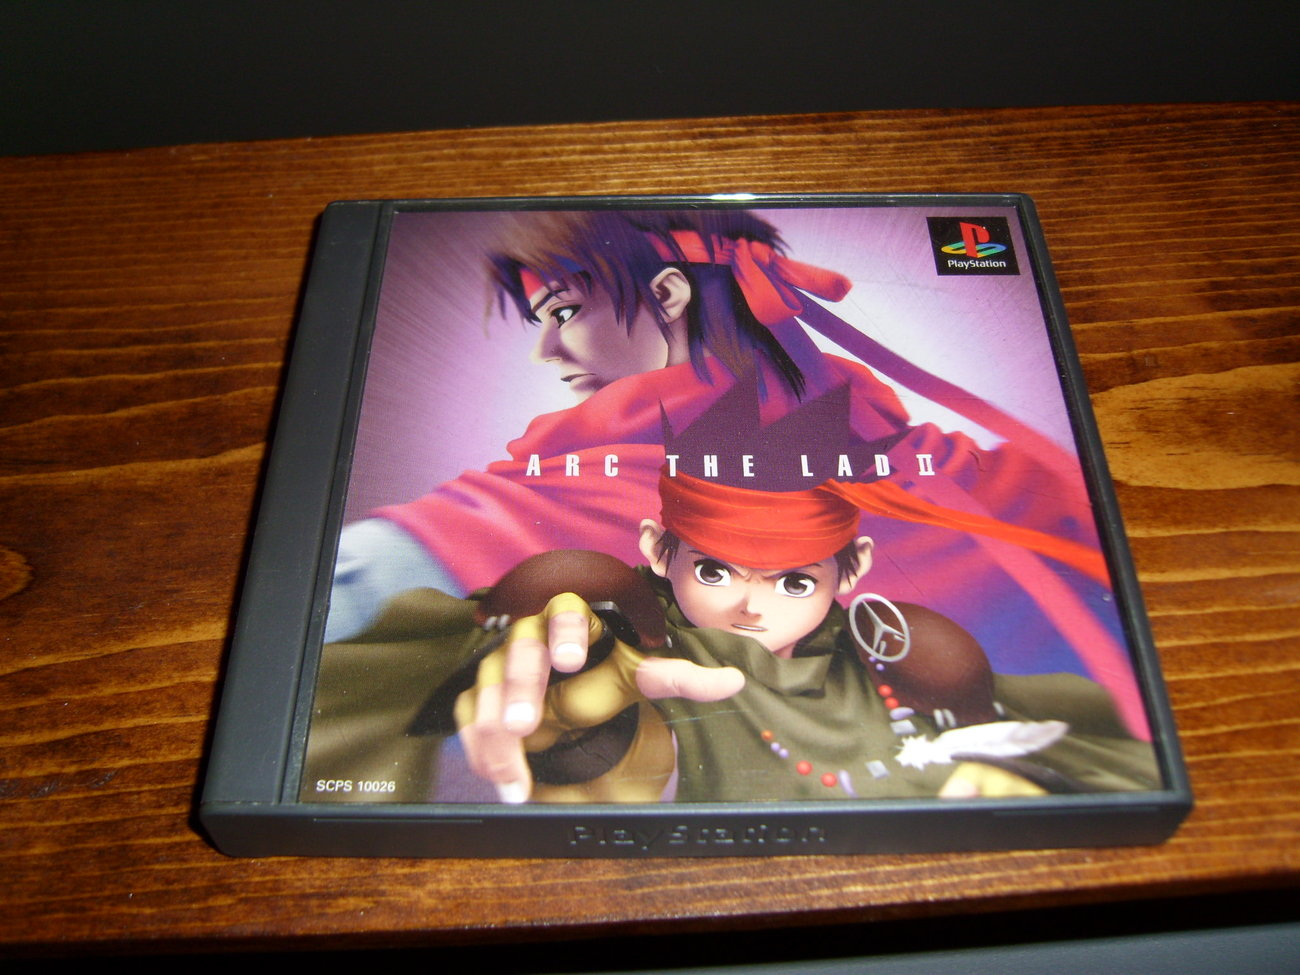 Arc the Lad II Playstation game for Japan ONLY